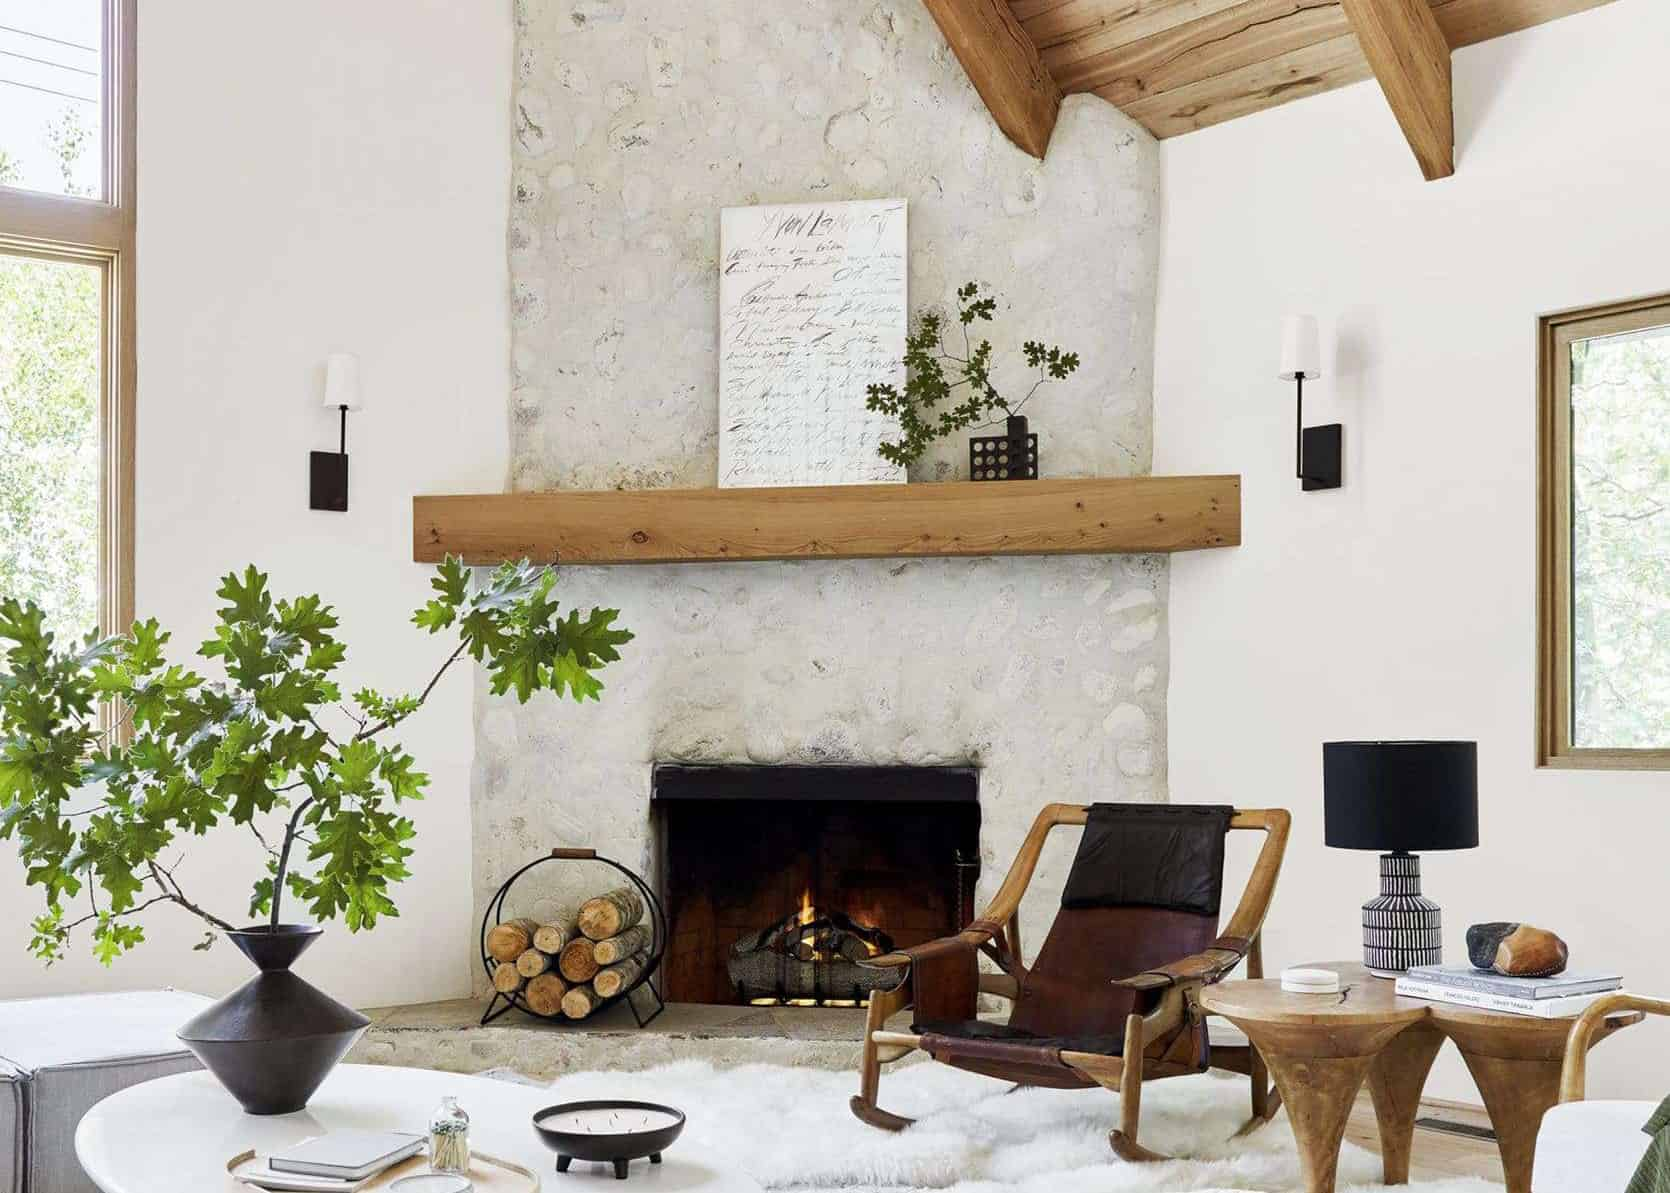 Where To Put Your TV And Fireplace: 4 Winning Formulas That Actually Look Good + What Not To Do